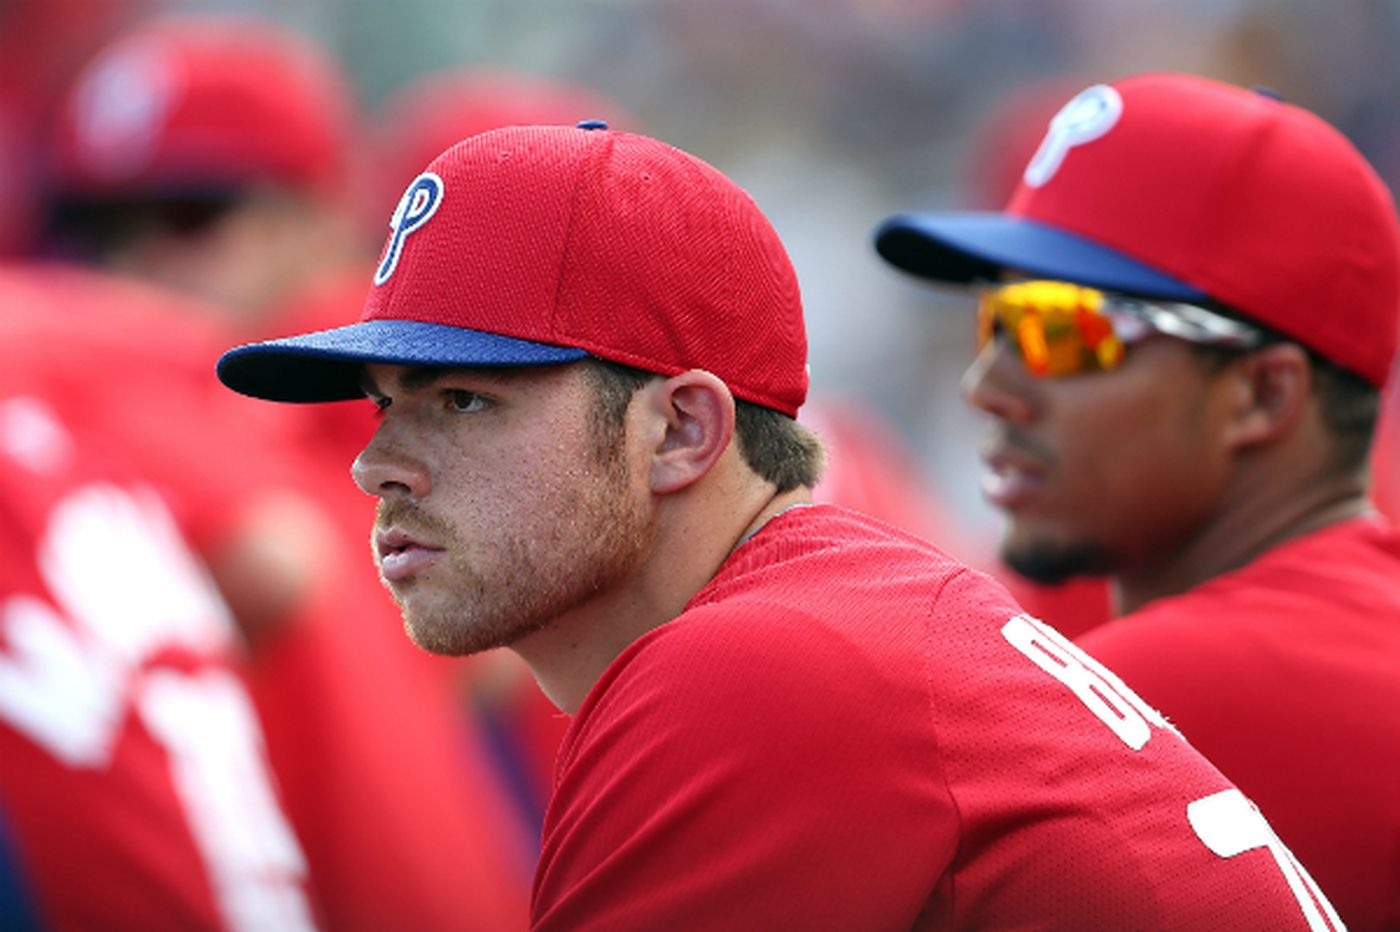 Phillies prospect Biddle tries to move forward